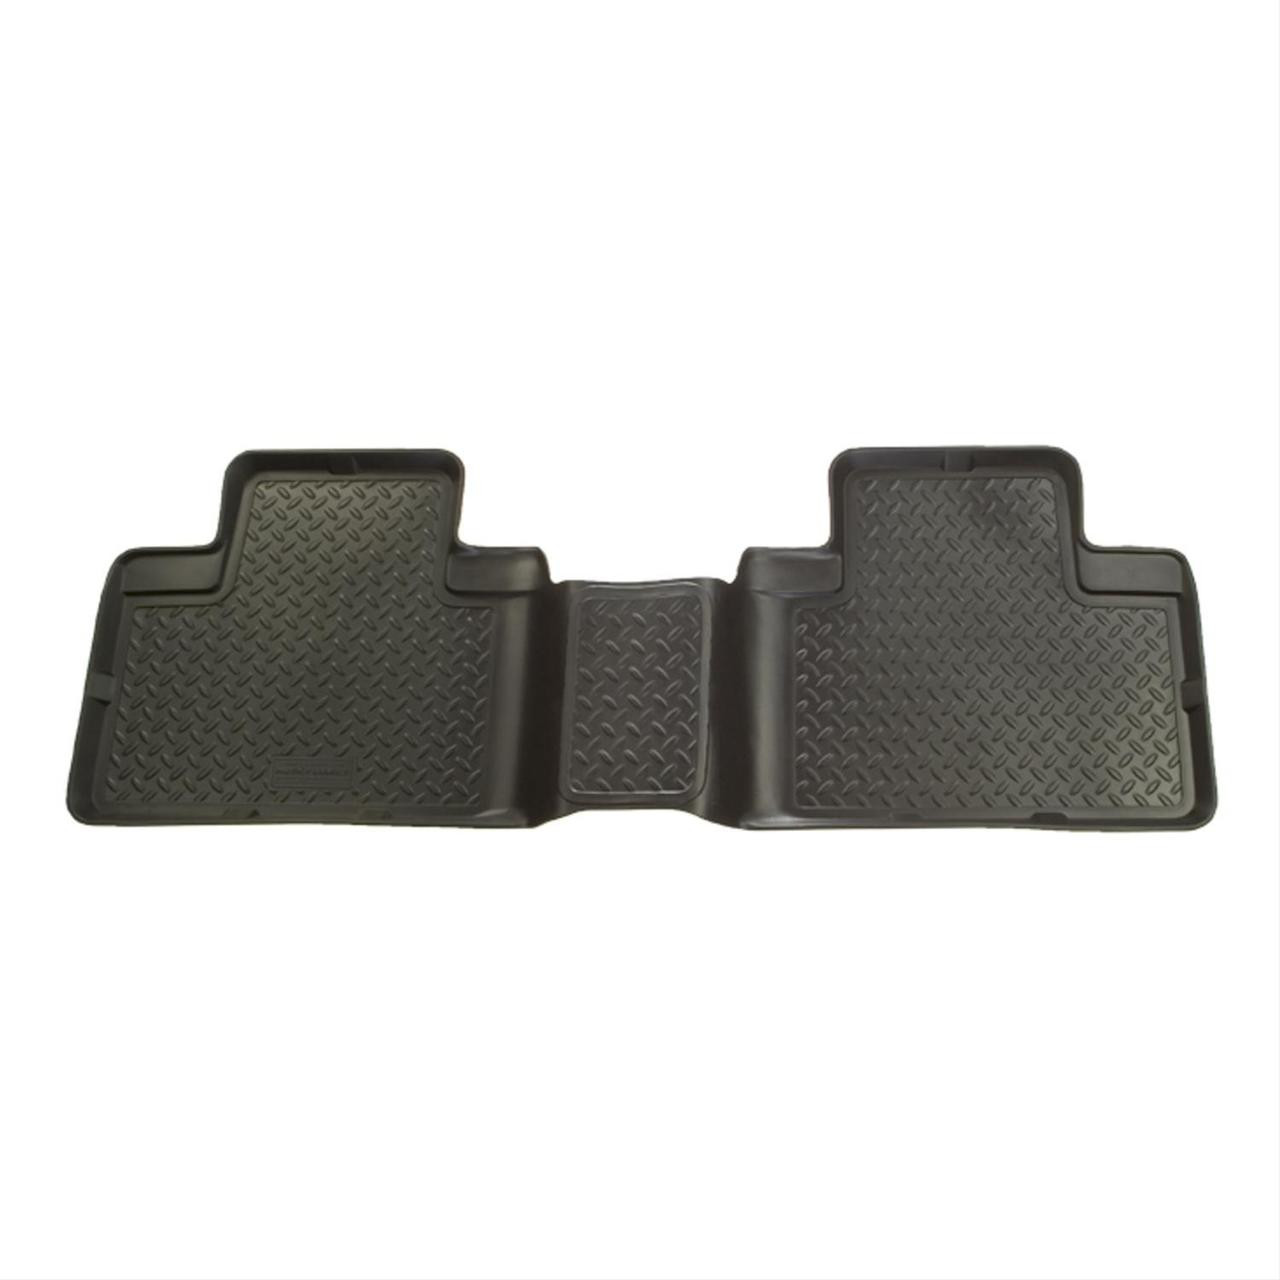 08-16 ENCLAVE/09-16 TRAVERSE/07-16 ACADIA (2ND ROW BENCH)3RD SEAT CLASSIC FLOOR LINER BLACK